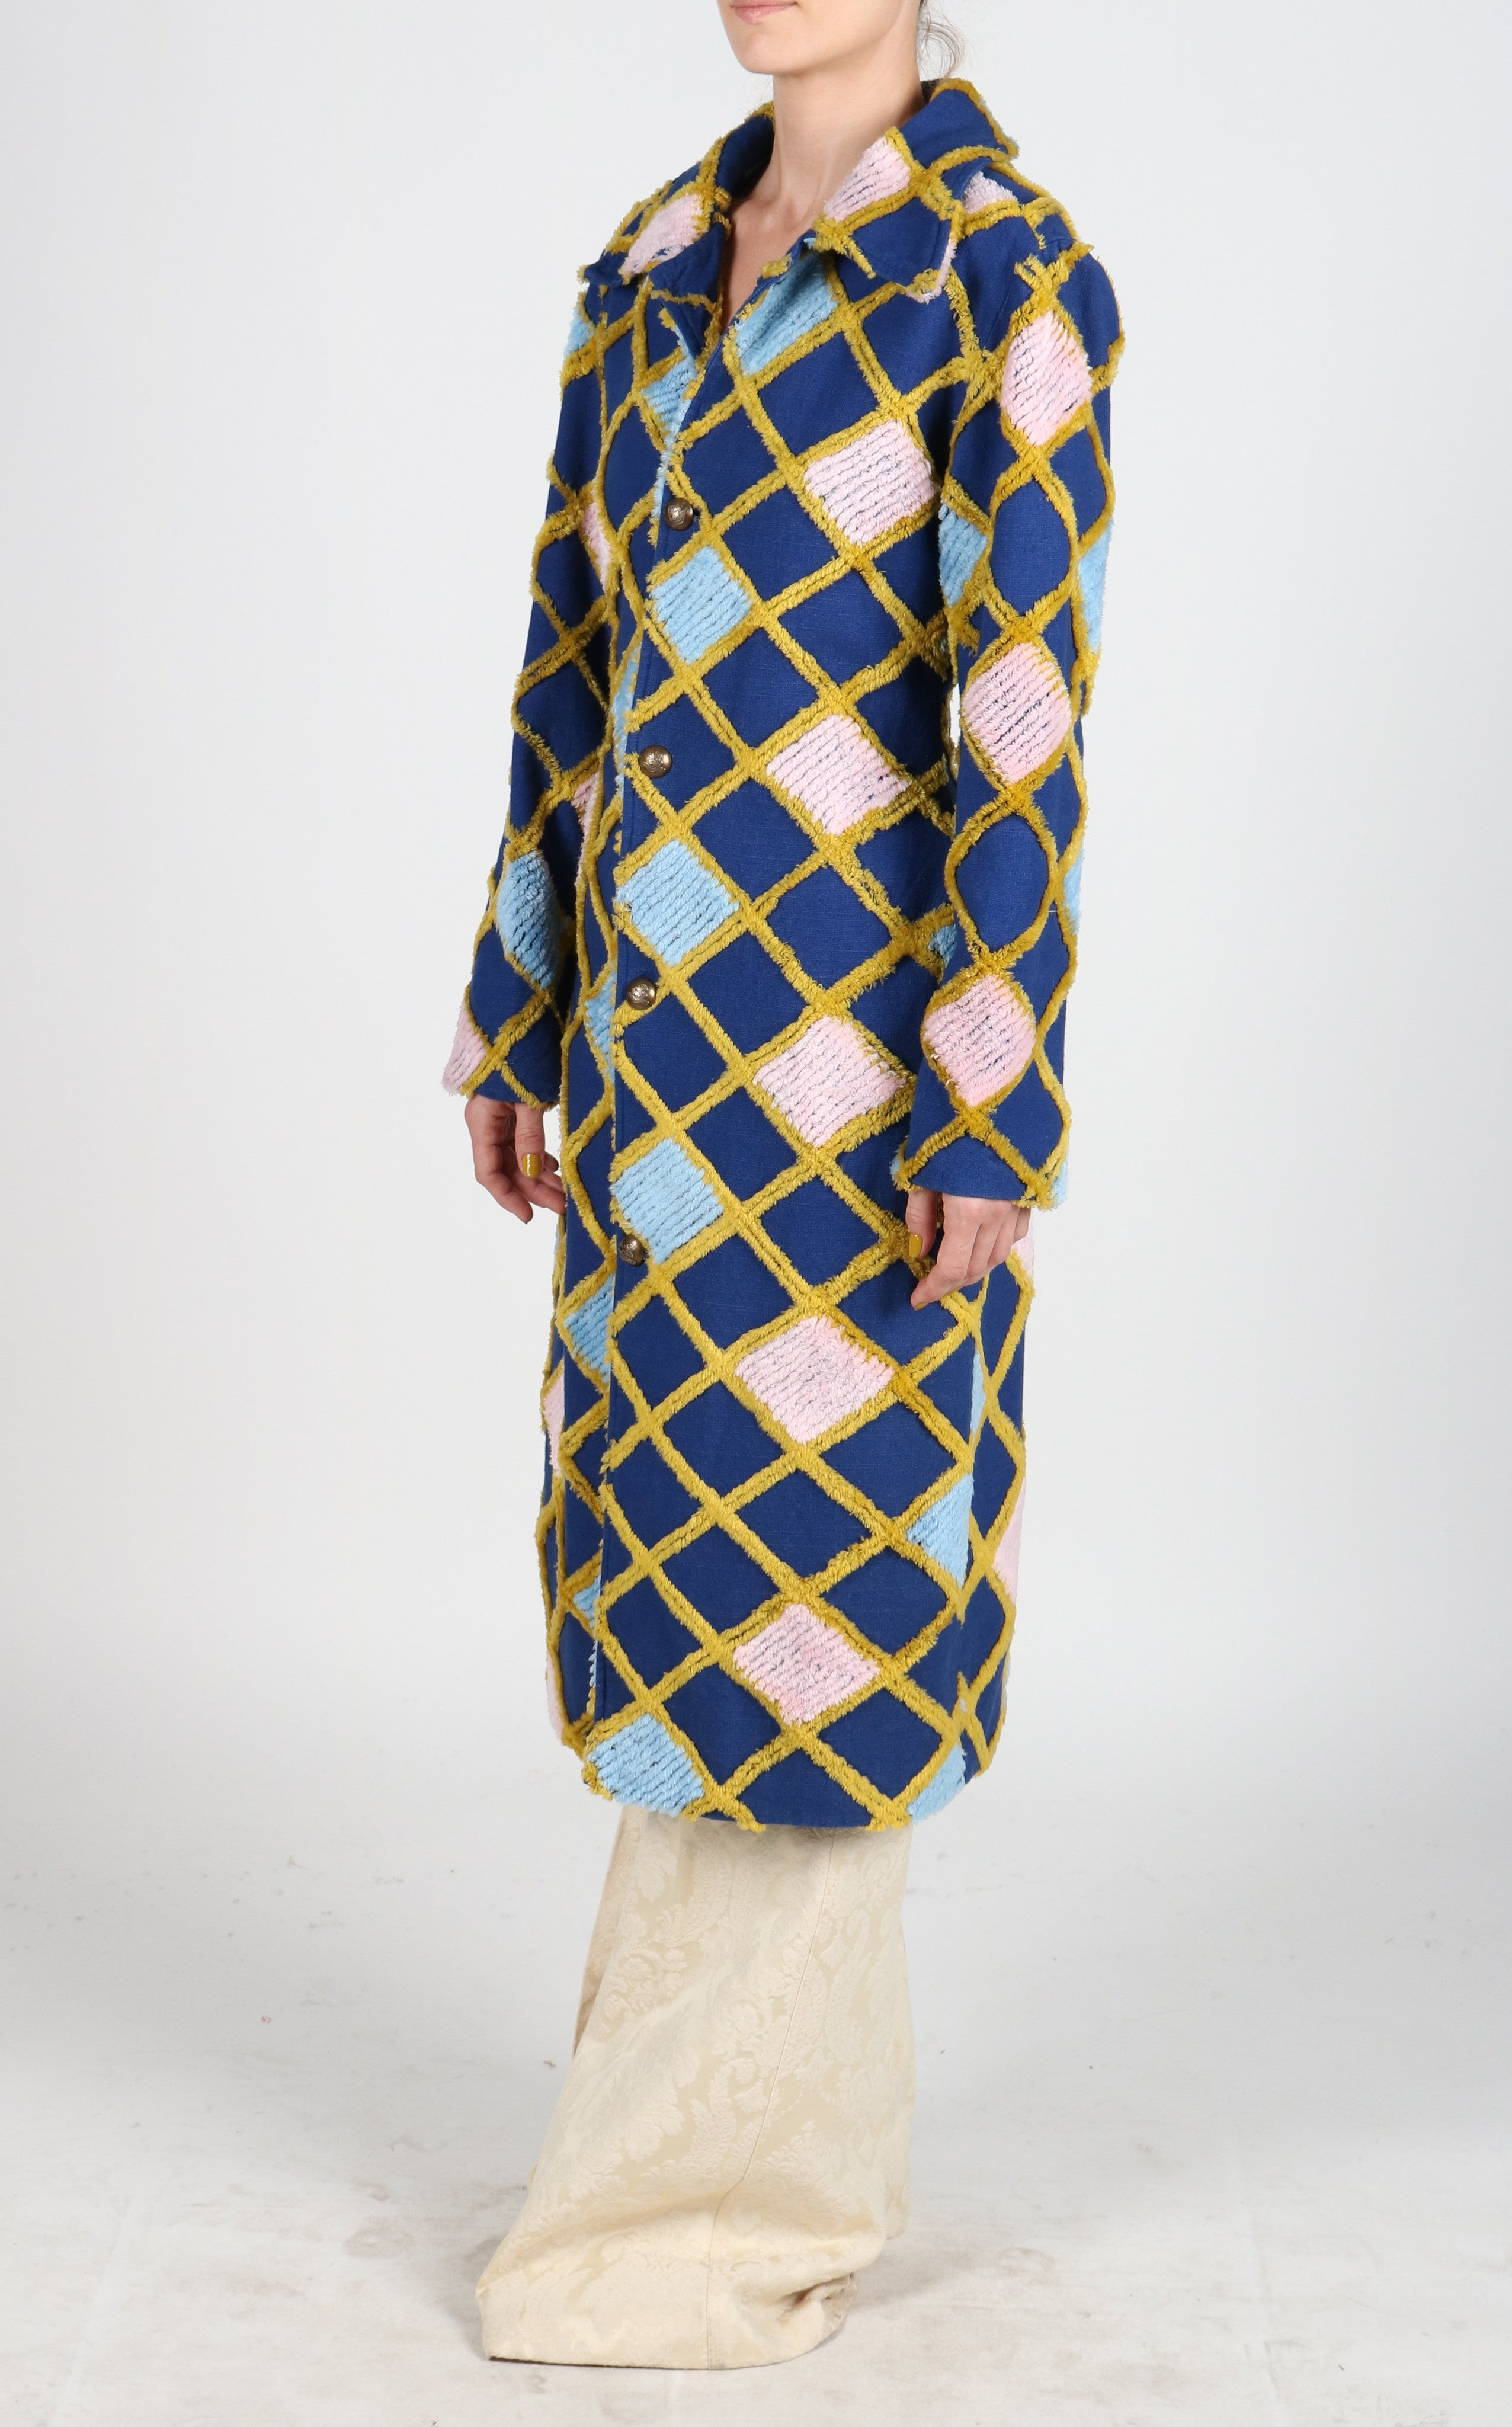 Fanm Mon KARRE Vyshyvanka Navy Pink Blue Gold Embroidered Stylish Coat